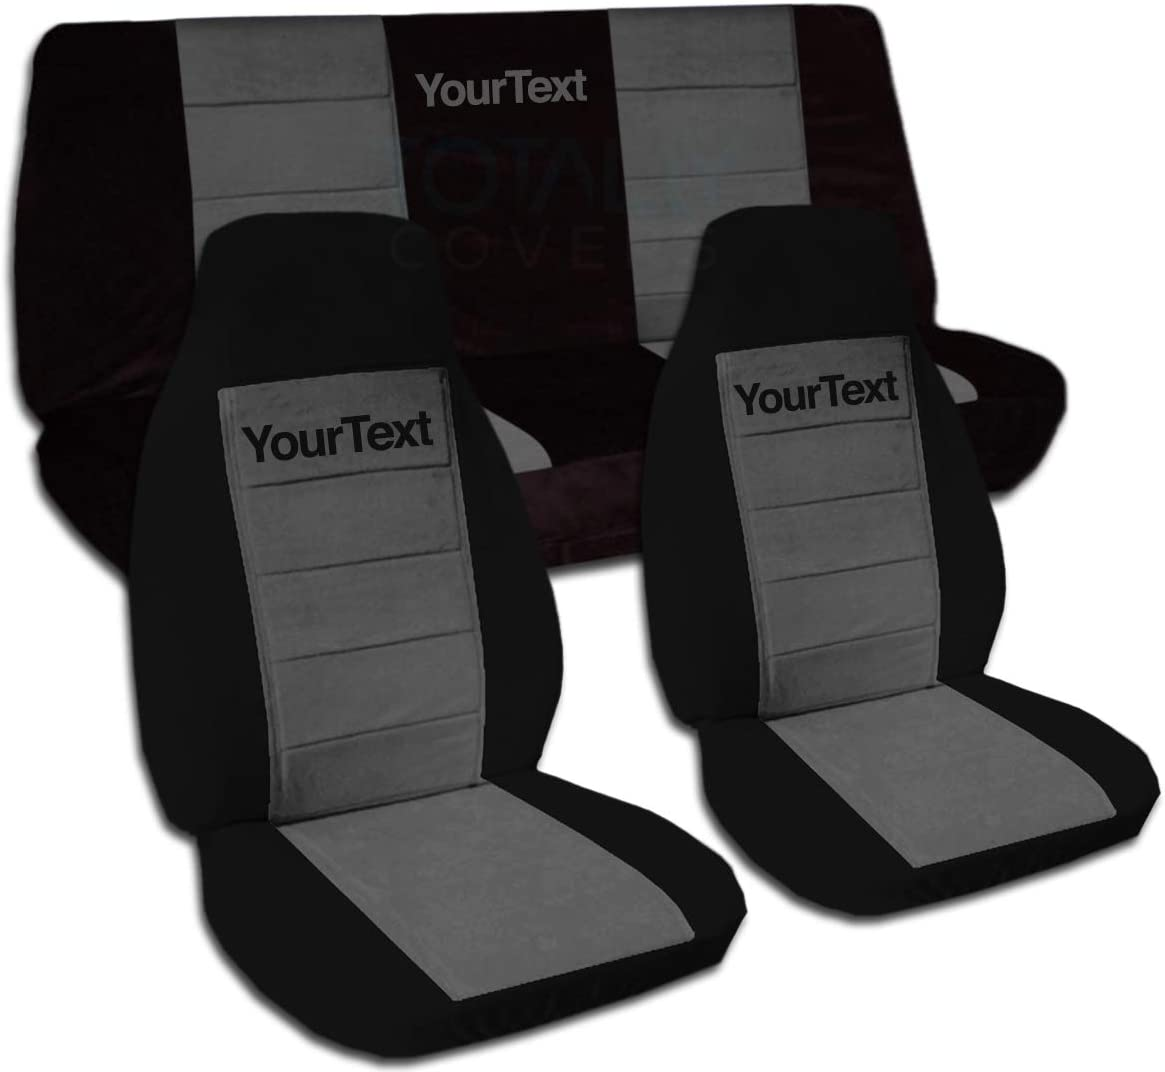 Totally Covers Compatible with 1997-2006 Jeep Wrangler TJ Two-Tone Seat Covers w Your Name/Text: Black & Charcoal - Full Set: Front & Rear (21 Colors) Complete Bench